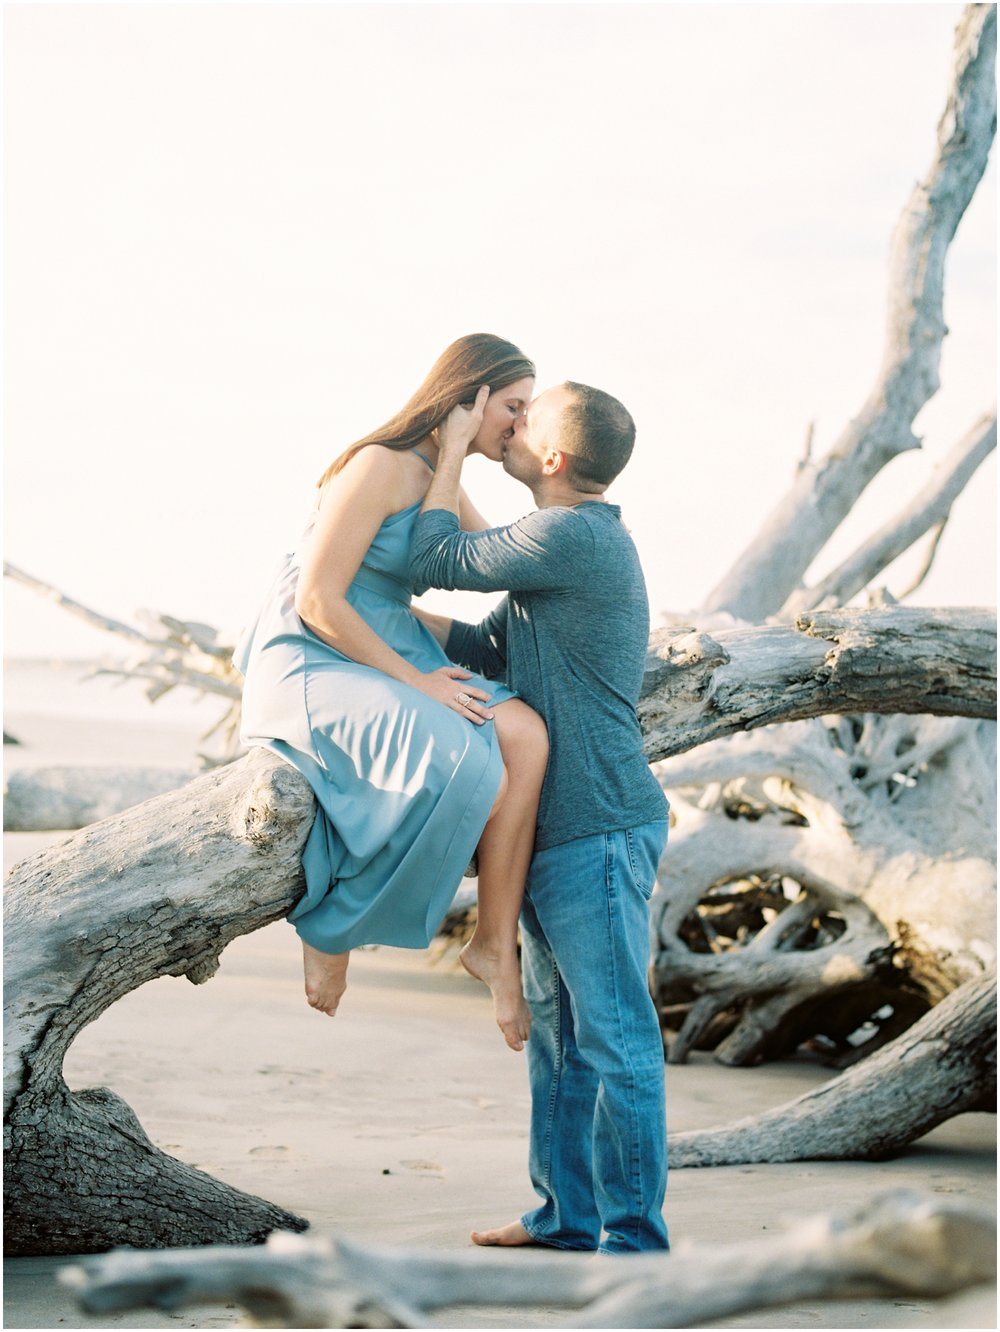 Lisa Silva Photography -Engagement Session at Big Talbot Island- Jacksonville and North East Florida Fine Art Film Photographer_0047.jpg